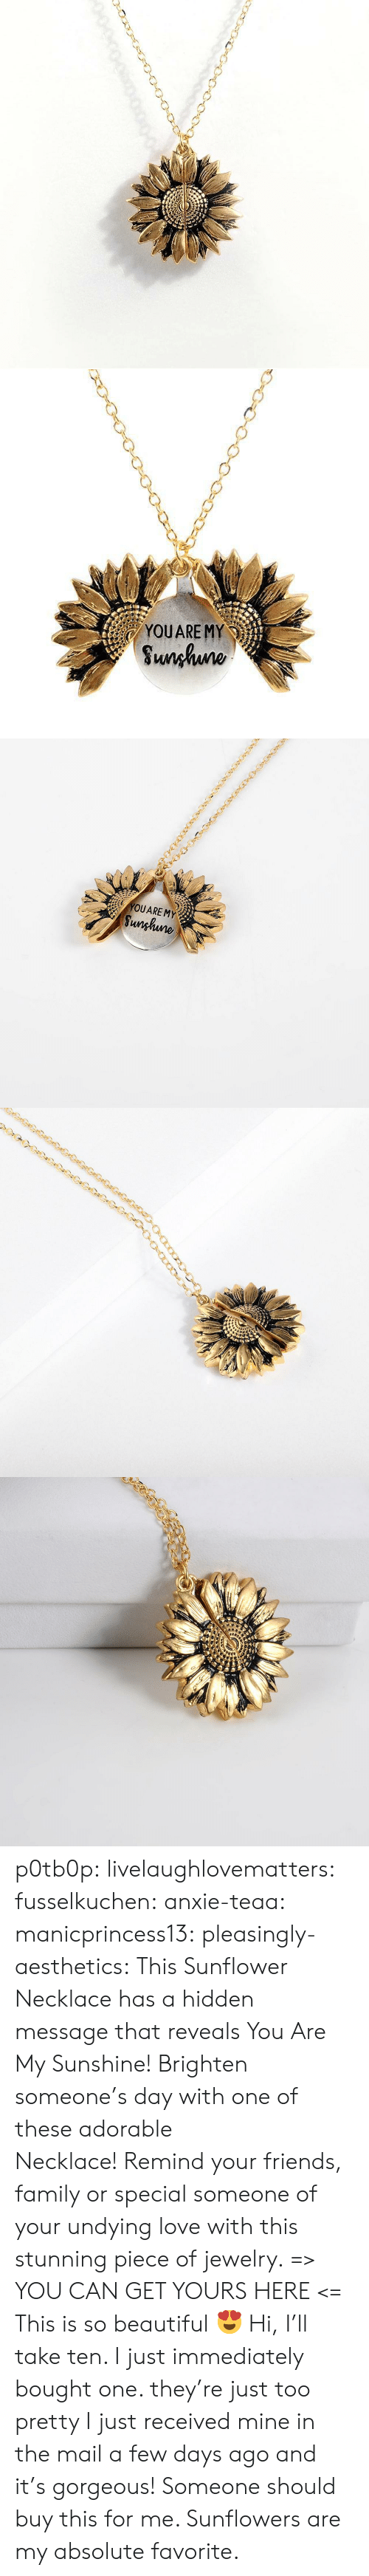 Sunflowers: YOUARE MY  Sunhuno   YOUARE MY  Sunghune p0tb0p:  livelaughlovematters: fusselkuchen:  anxie-teaa:   manicprincess13:   pleasingly-aesthetics:  This Sunflower Necklace has a hidden message that reveals You Are My Sunshine! Brighten someone's day with one of these adorable Necklace! Remind your friends, family or special someone of your undying love with this stunning piece of jewelry. => YOU CAN GET YOURS HERE <=   This is so beautiful 😍    Hi, I'll take ten.    I just immediately bought one. they're just too pretty   I just received mine in the mail a few days ago and it's gorgeous!   Someone should buy this for me. Sunflowers are my absolute favorite.